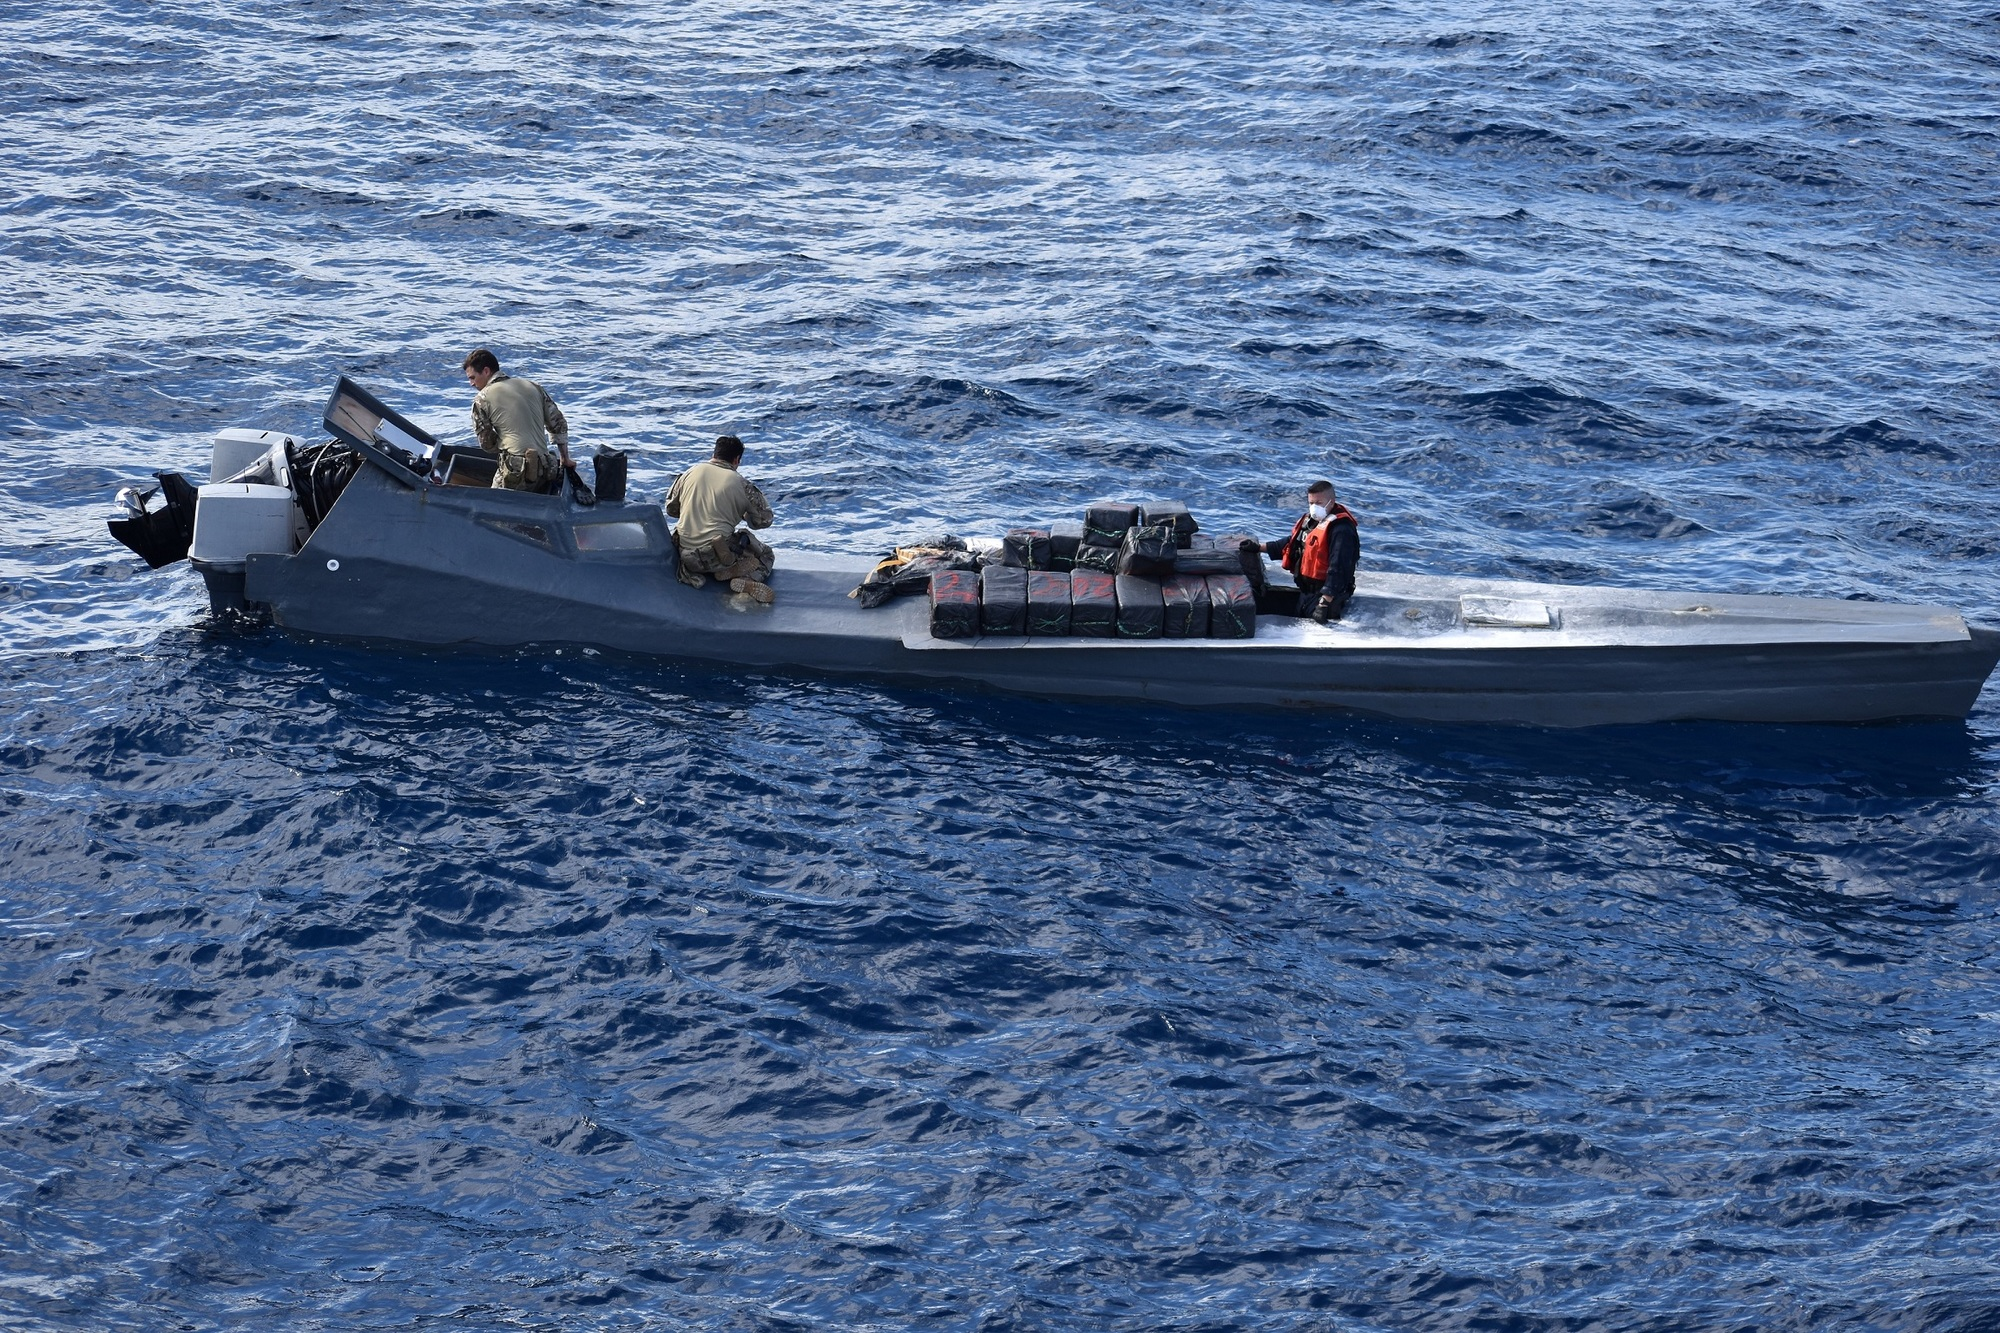 PHOTO RELEASE: Coast Guard Cutter Vigilant crew returns home after 55-day counter-drug patrol